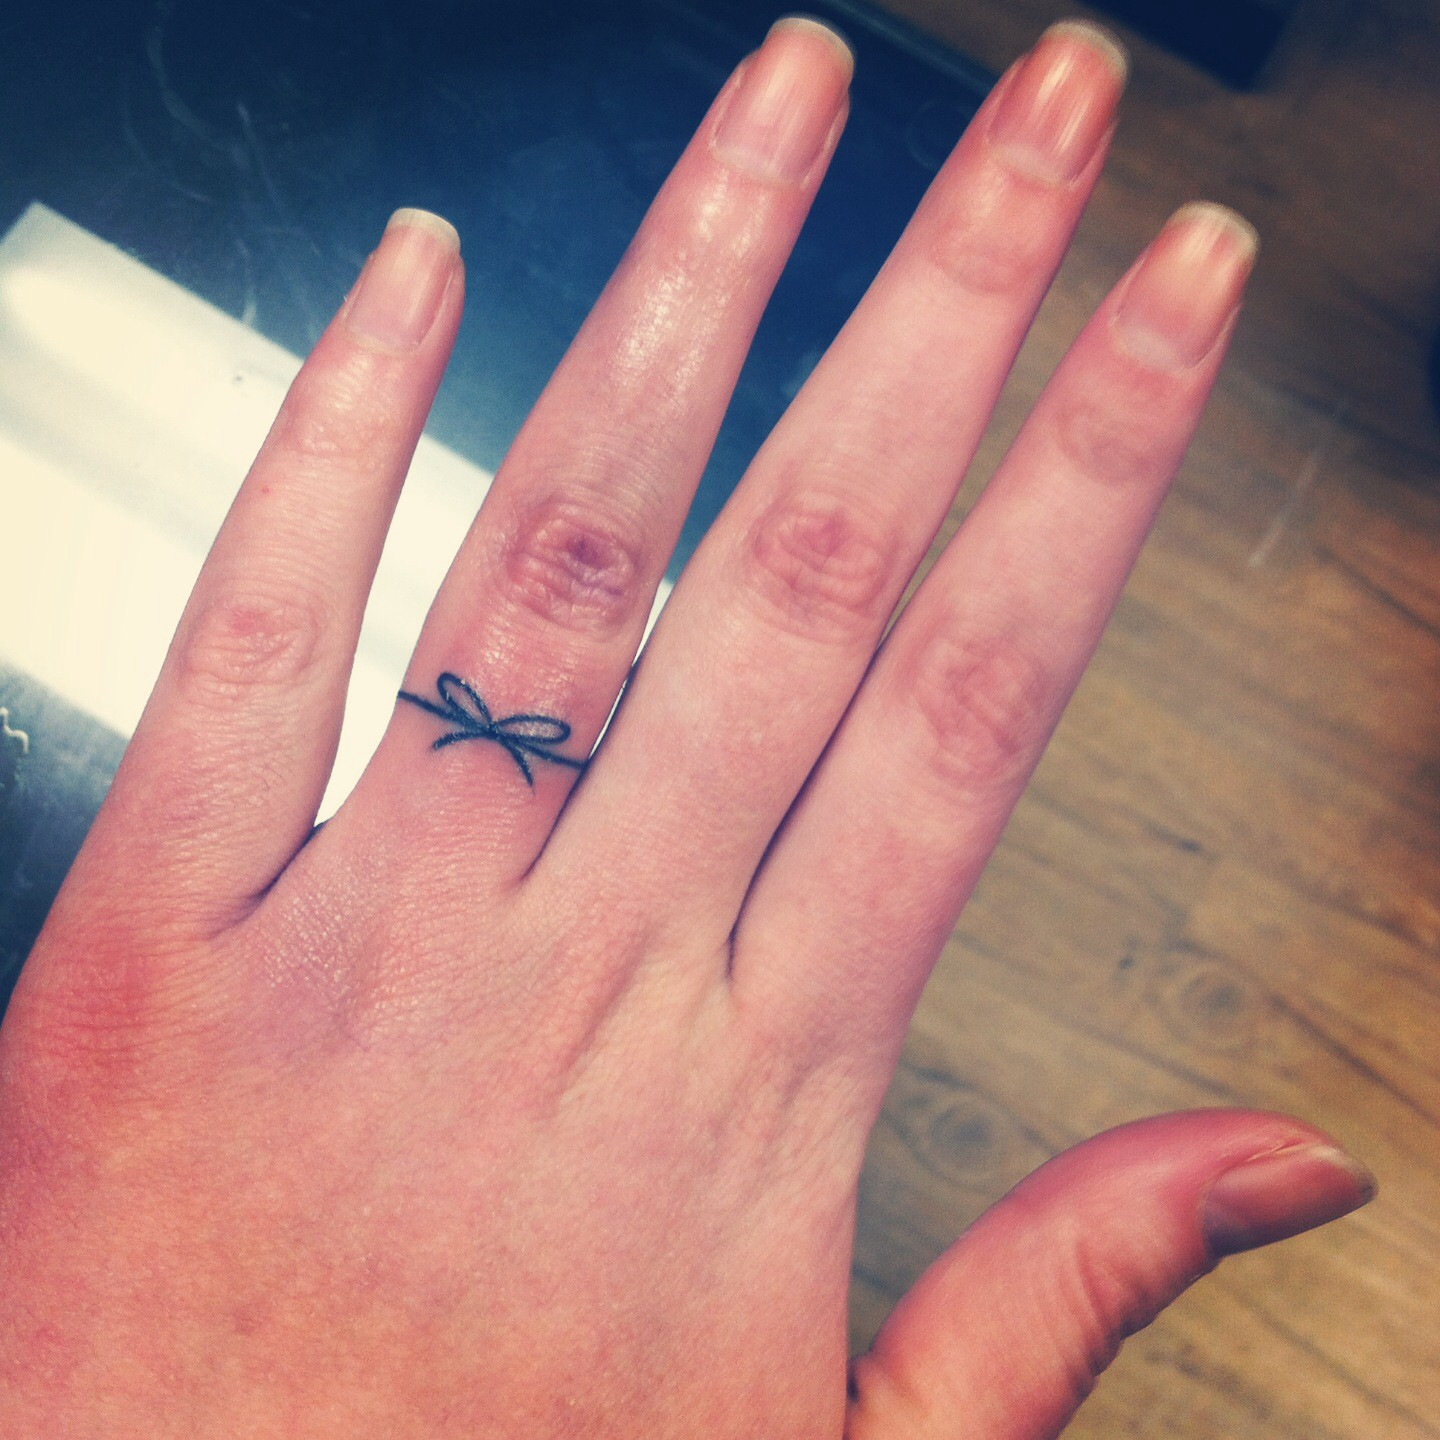 Black Thread Bow Wedding Ring Tattoo On Girl Finger